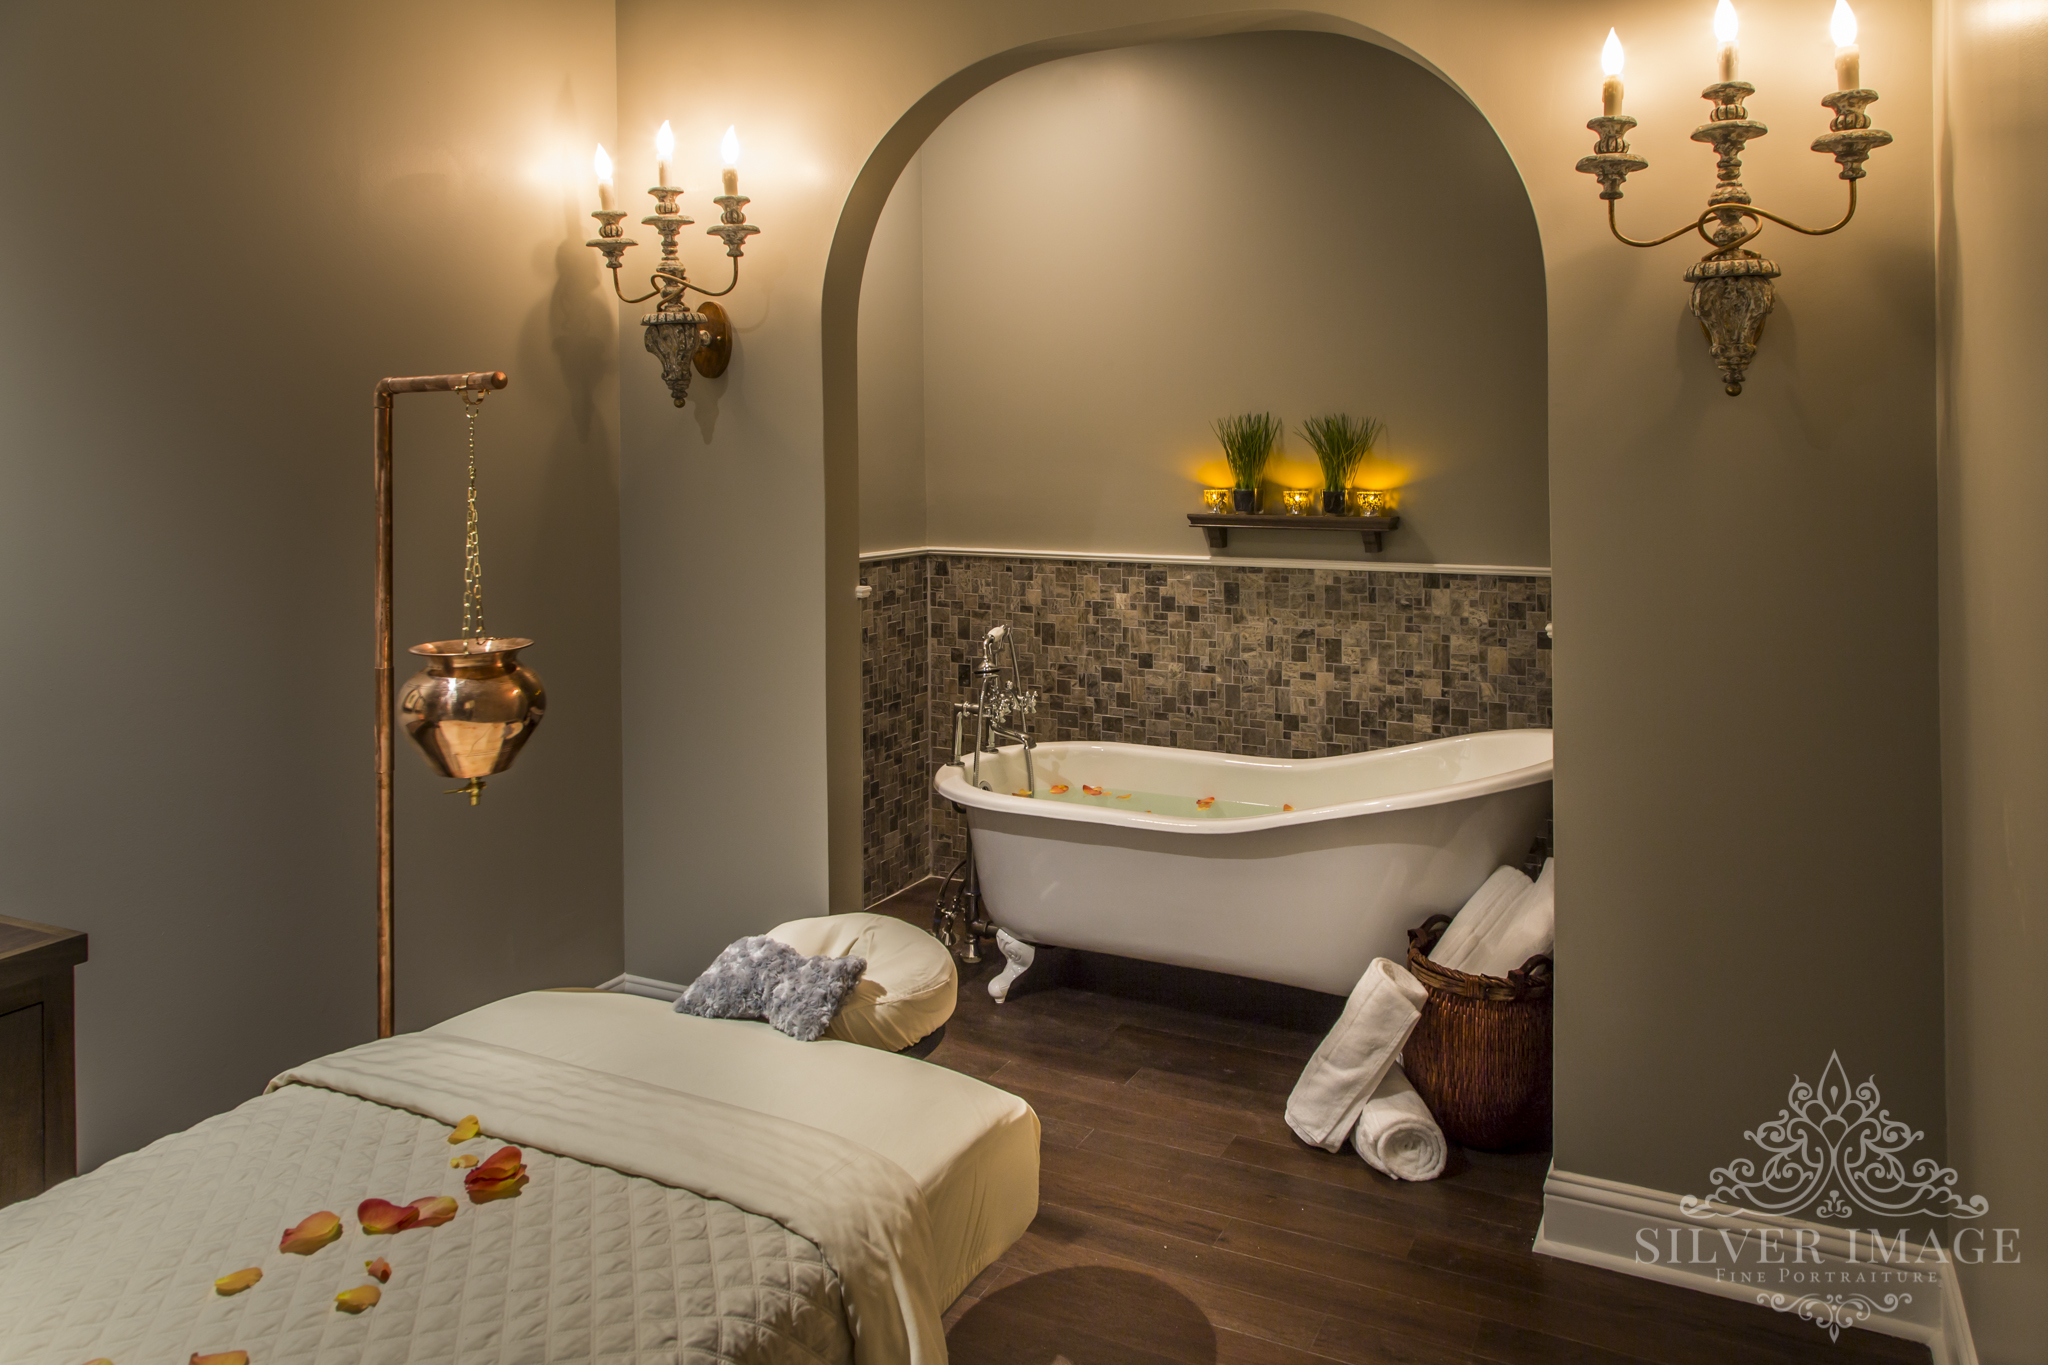 spa tub and massage table